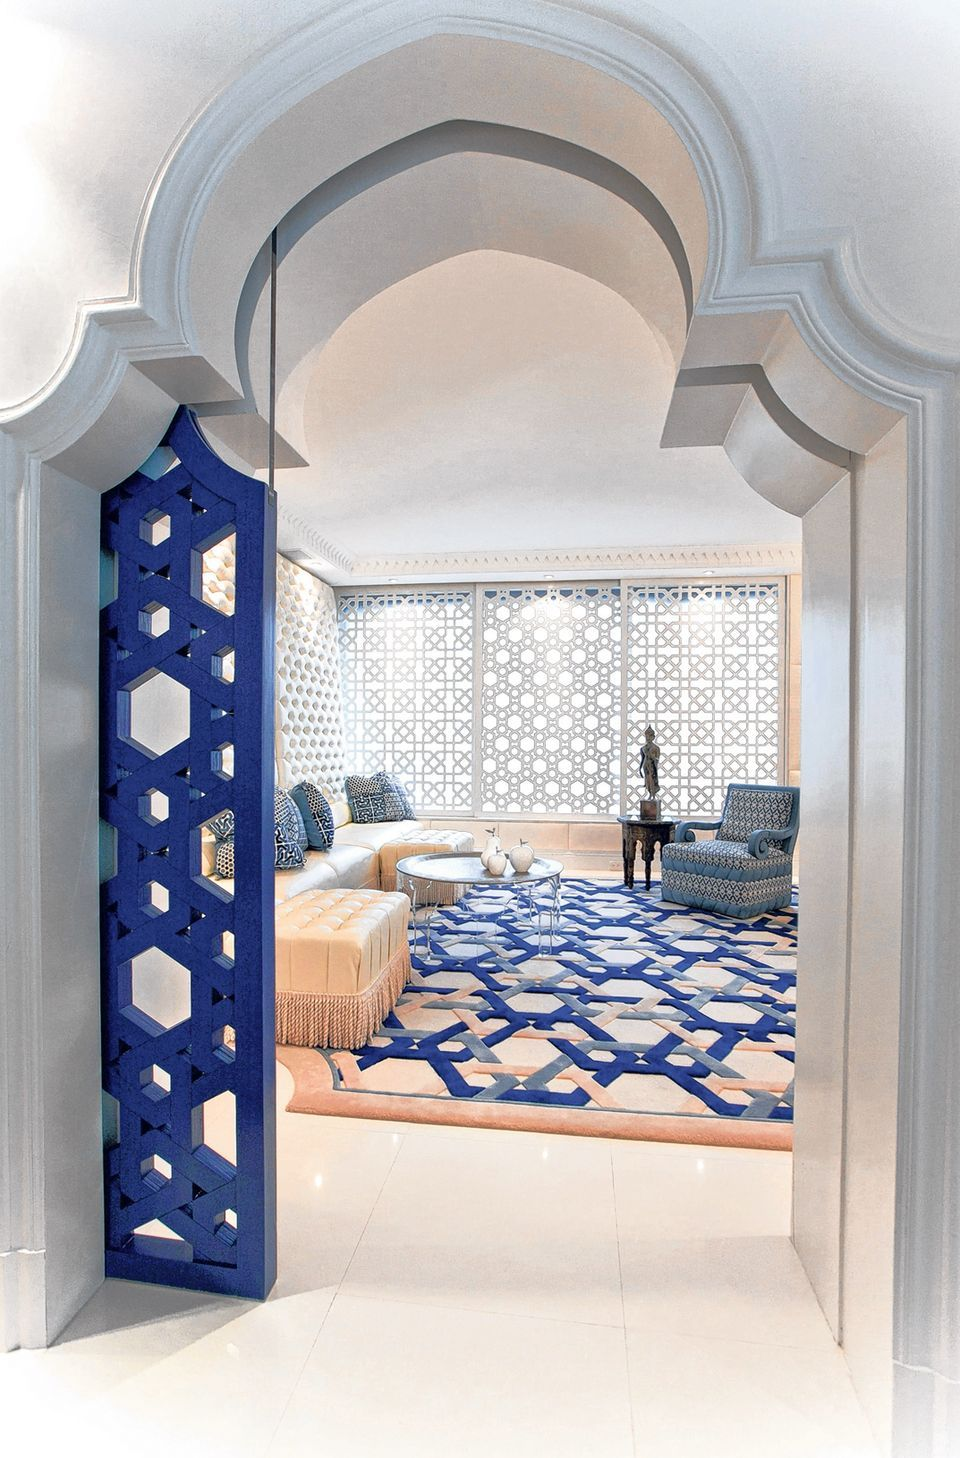 Moroccan Design Ideas inspiration bedroom for decor Zellige Inspired White And Blue Moroccan Decor The Door Is My Fav